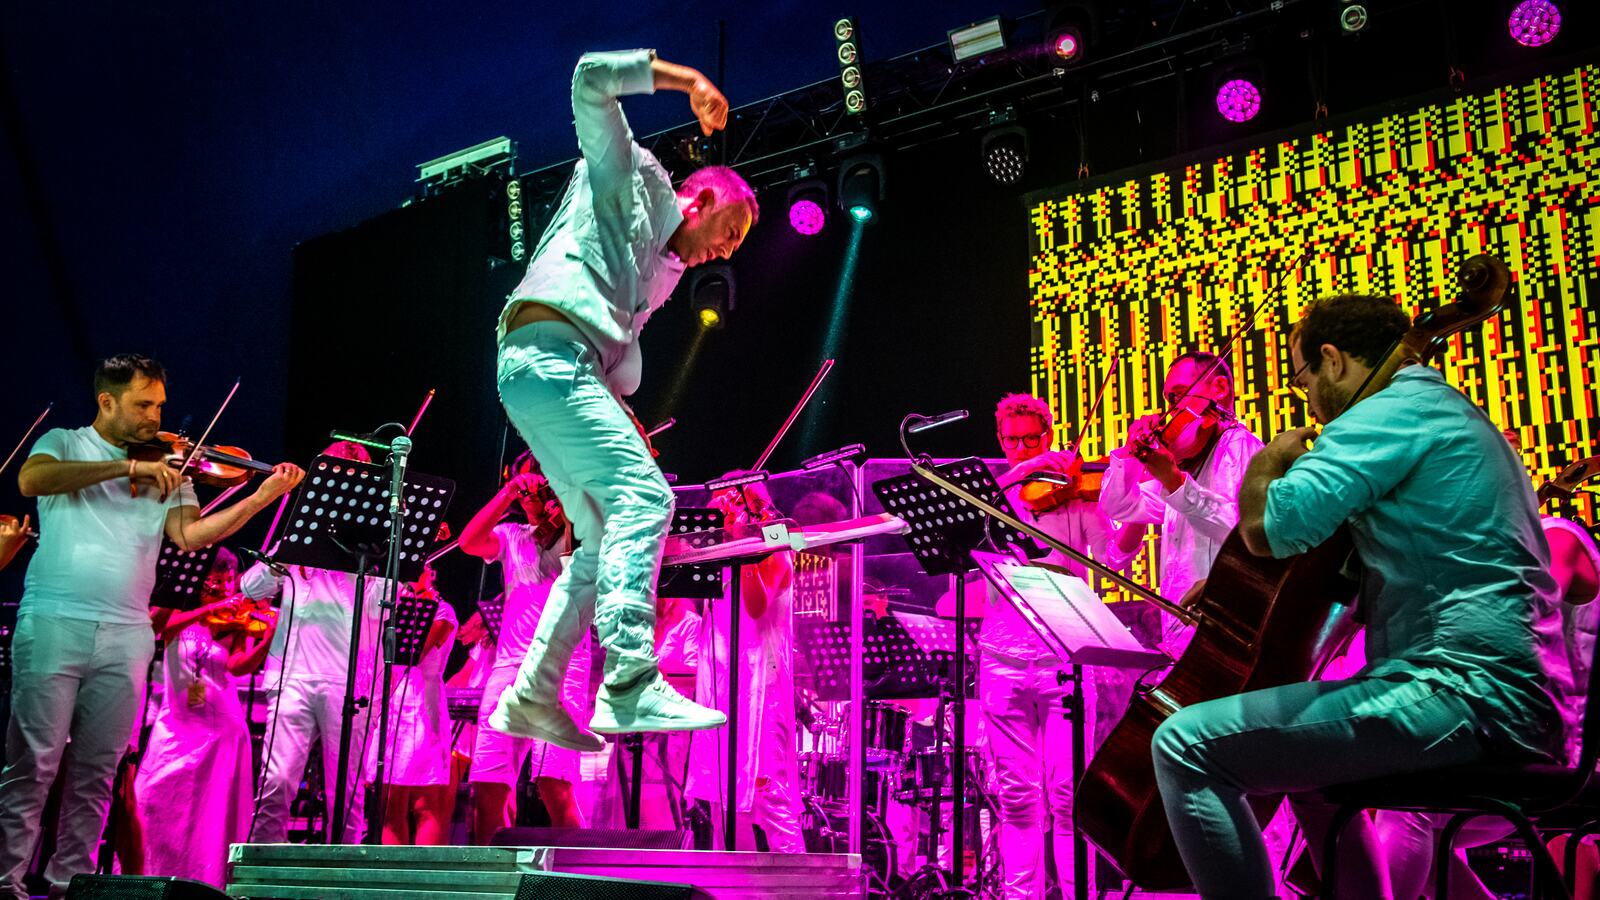 The Love Unlimited Synth Orchestra performing on stage